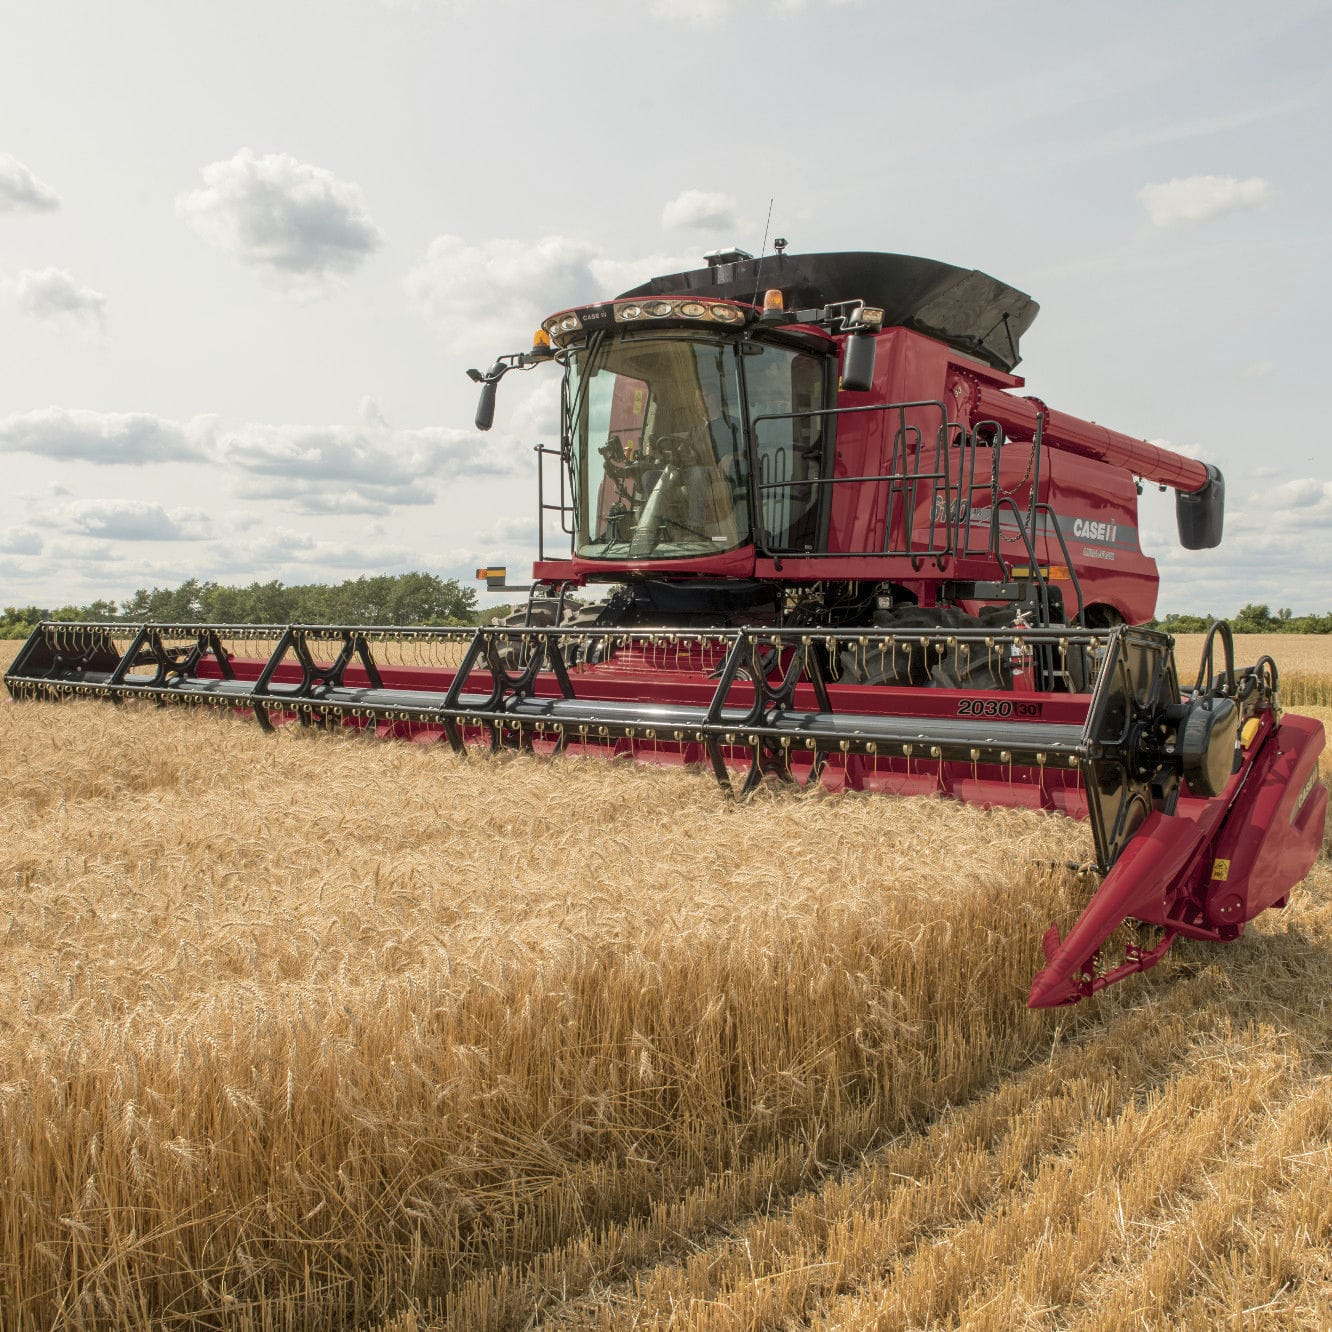 Agricultural Harvester Market Report 2021, Market Share, Size, Trends, Forecast and Analysis of Key players 2026